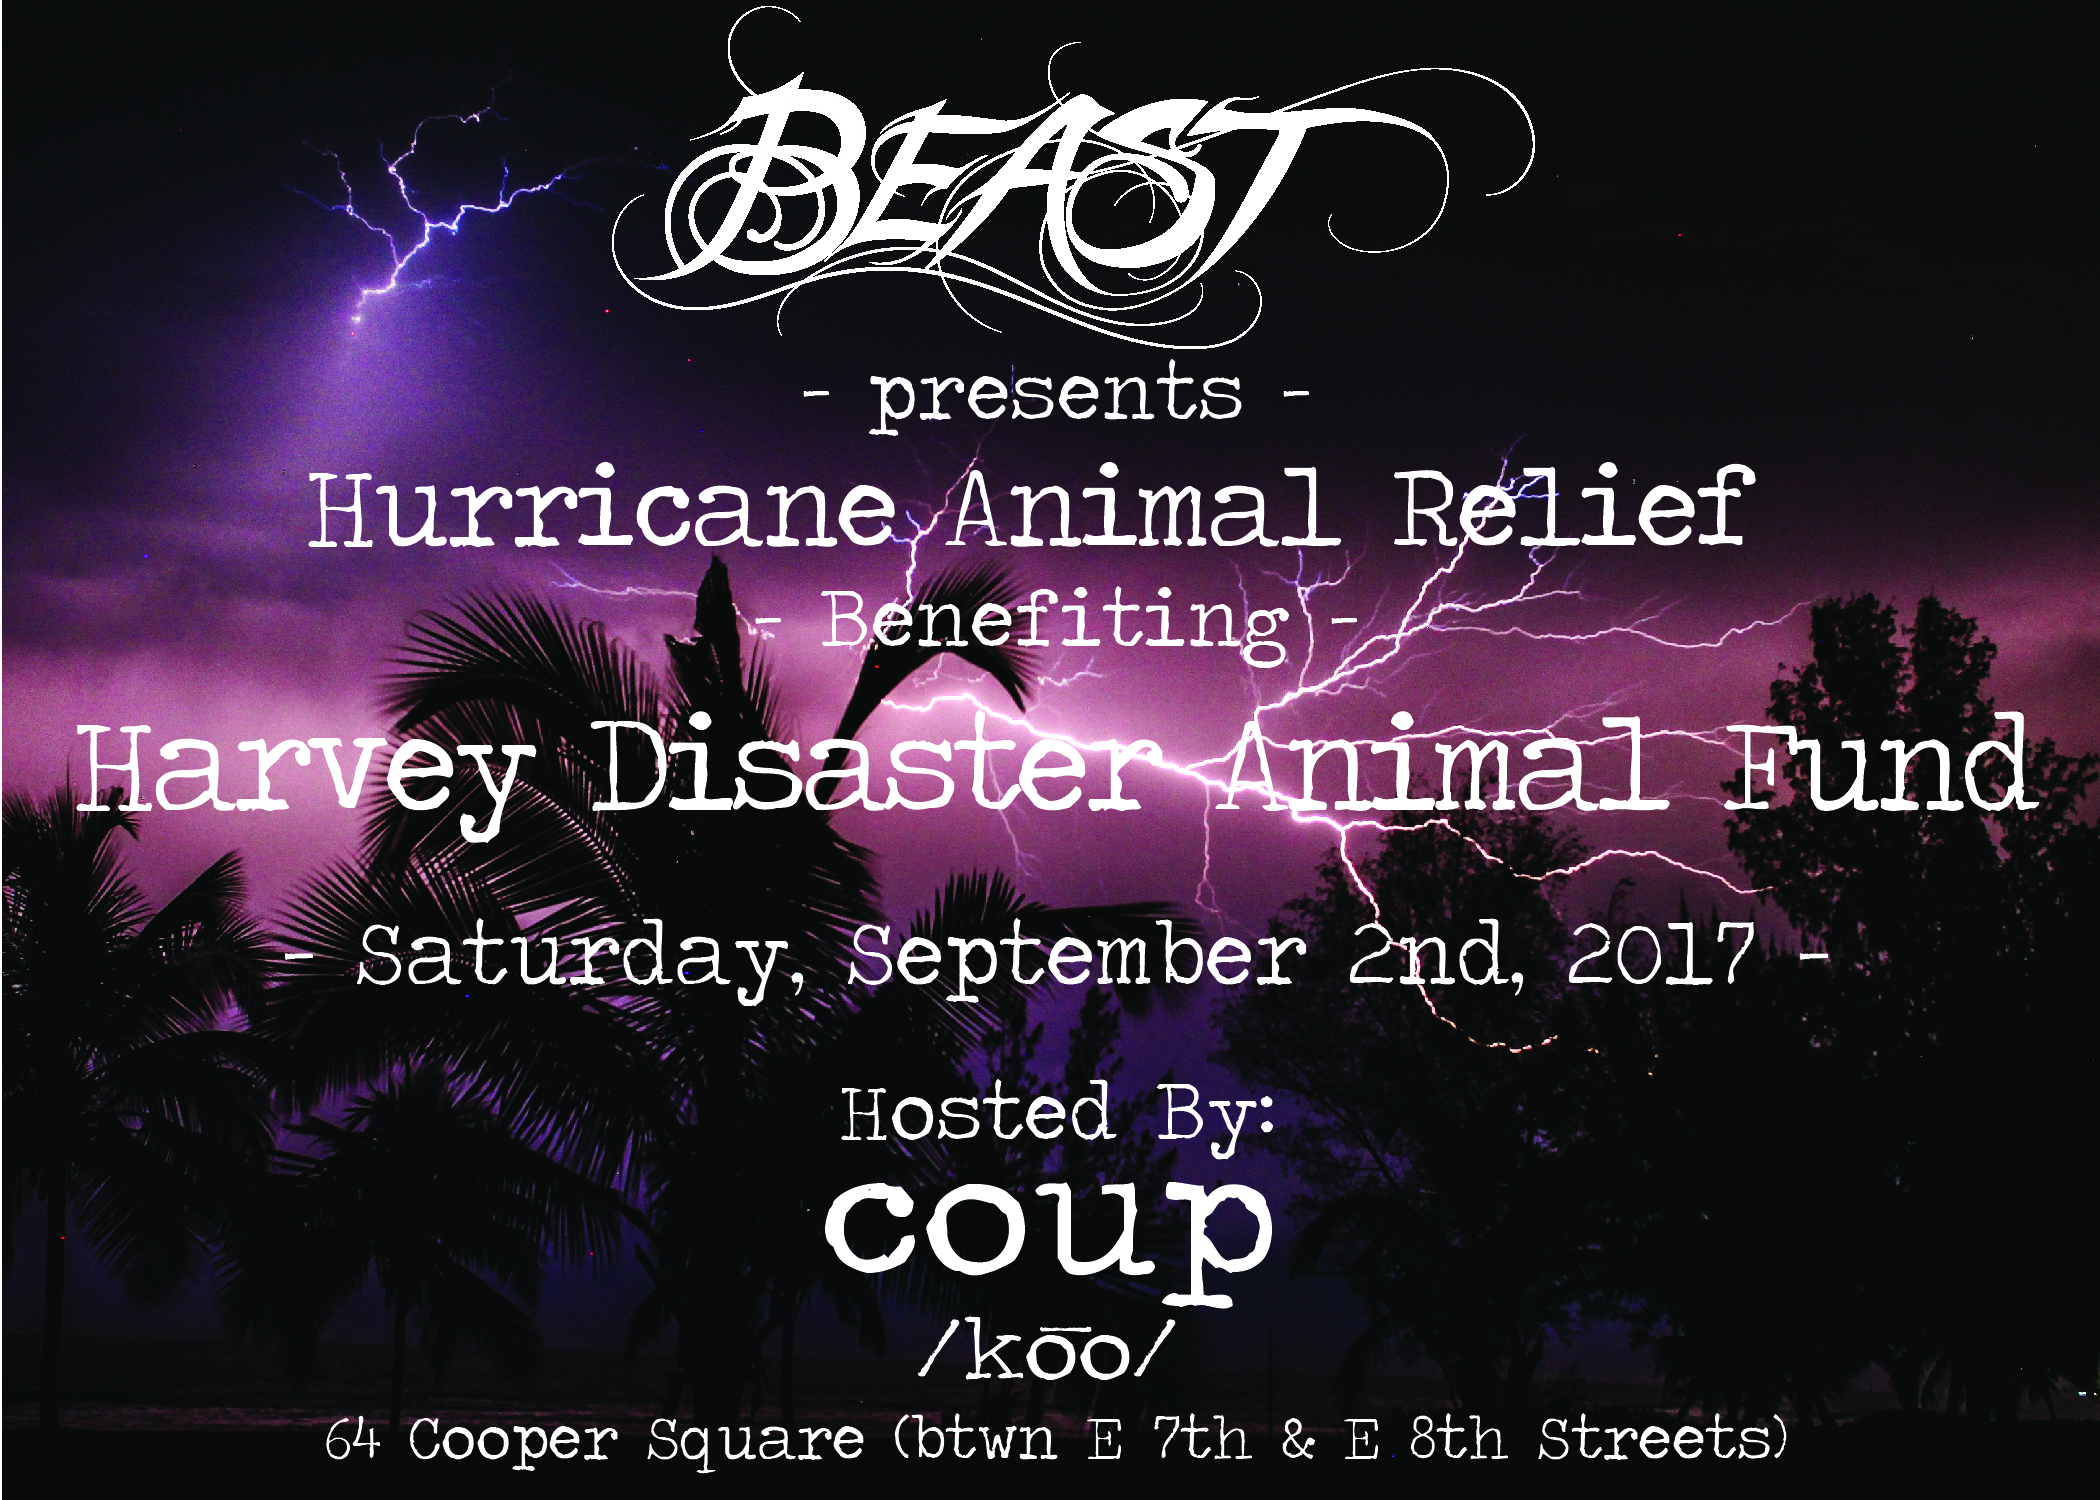 Join us September 2nd for our harvey disaster animal fund event to raise money for 4 paws farm and provide food, shelter, veterinary care and transportation for animals in need.